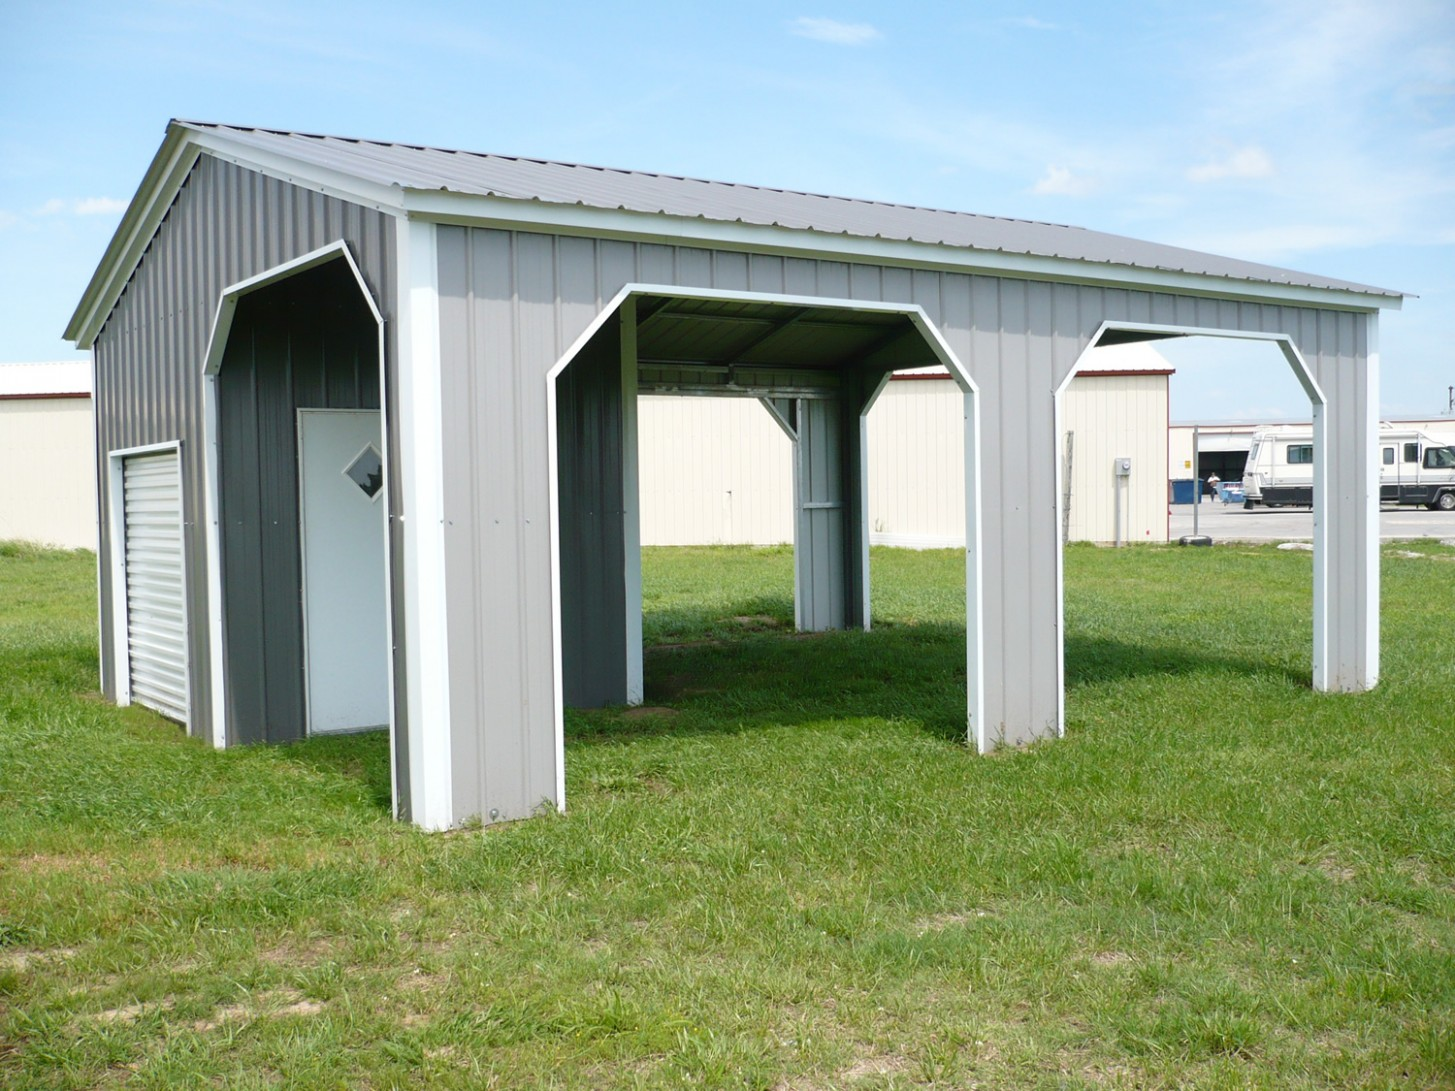 1517751773-metal-carport-carolina-carports-enterprise-center-two-carport.jpg